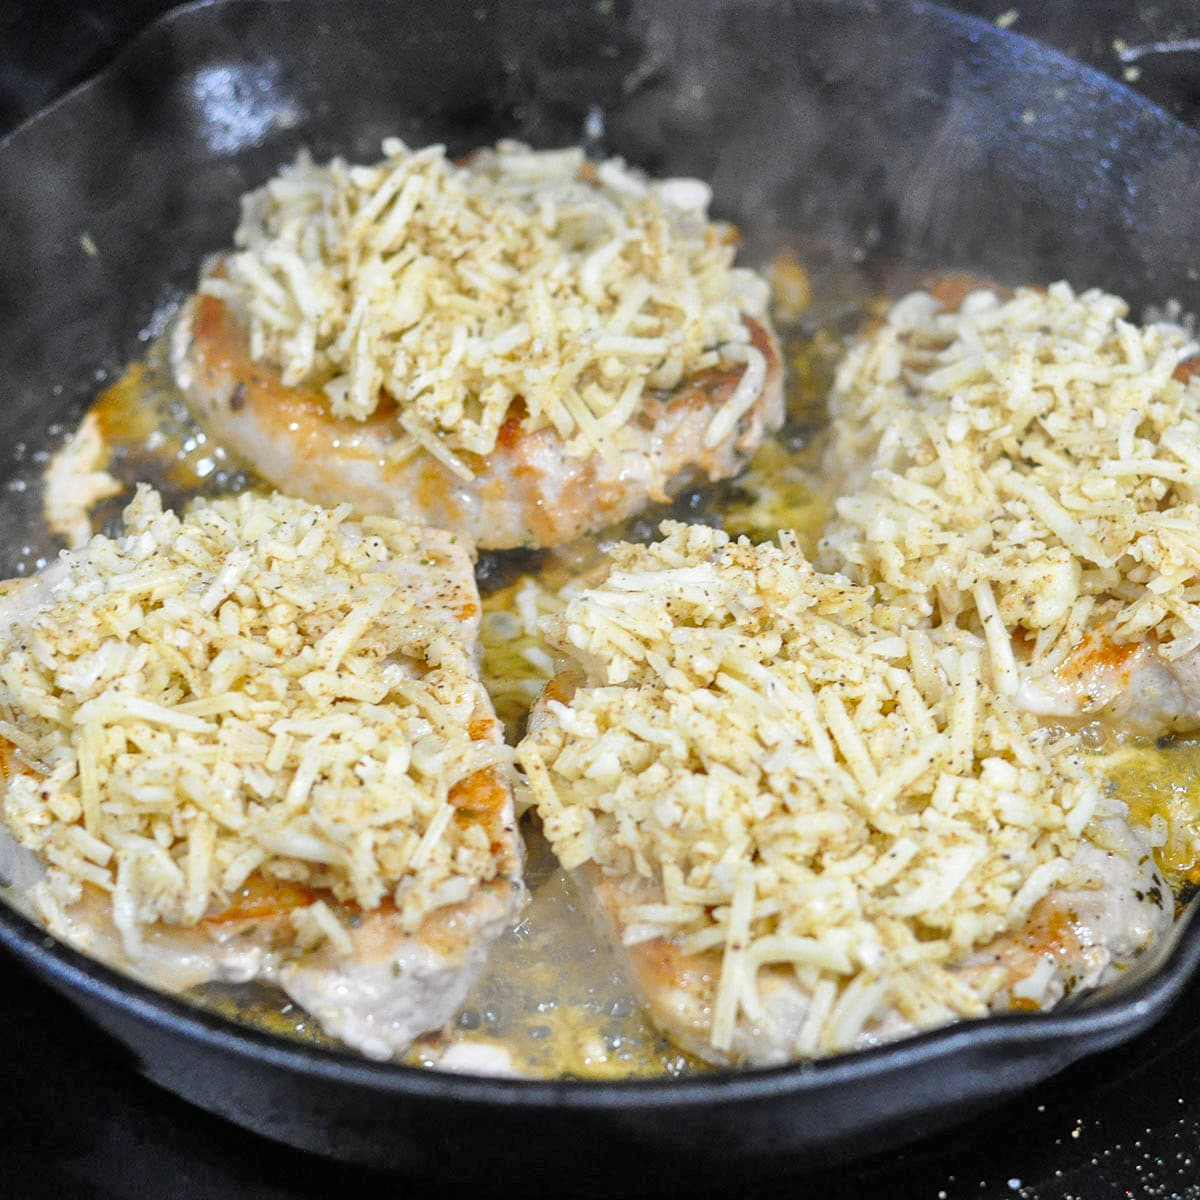 pork chops topped with cheese cooking in a cast iron skillet